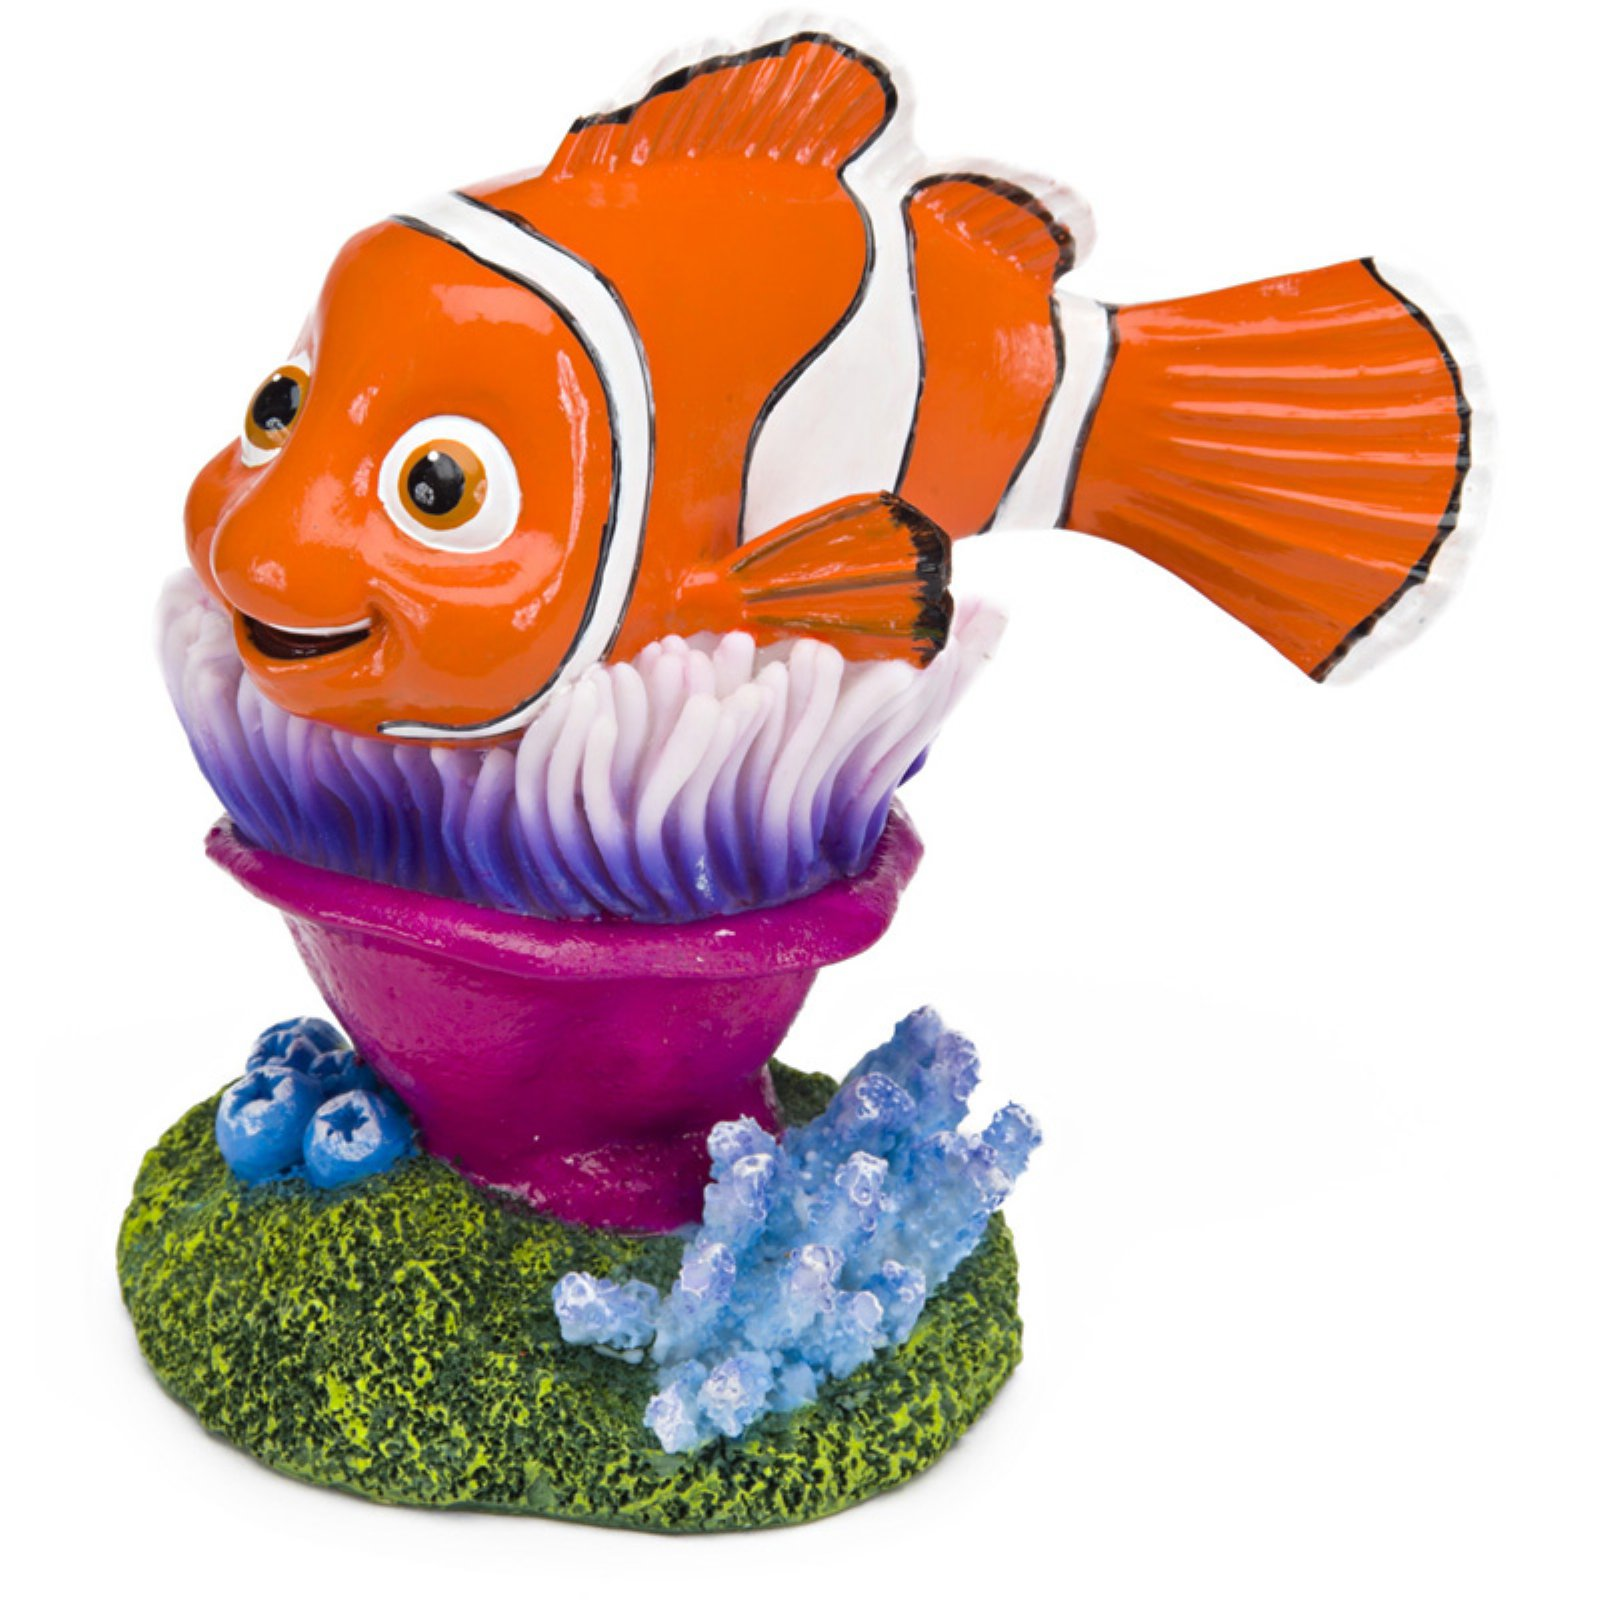 Penn Plax Finding Nemo On Anemone 4 in. Aquarium Ornament